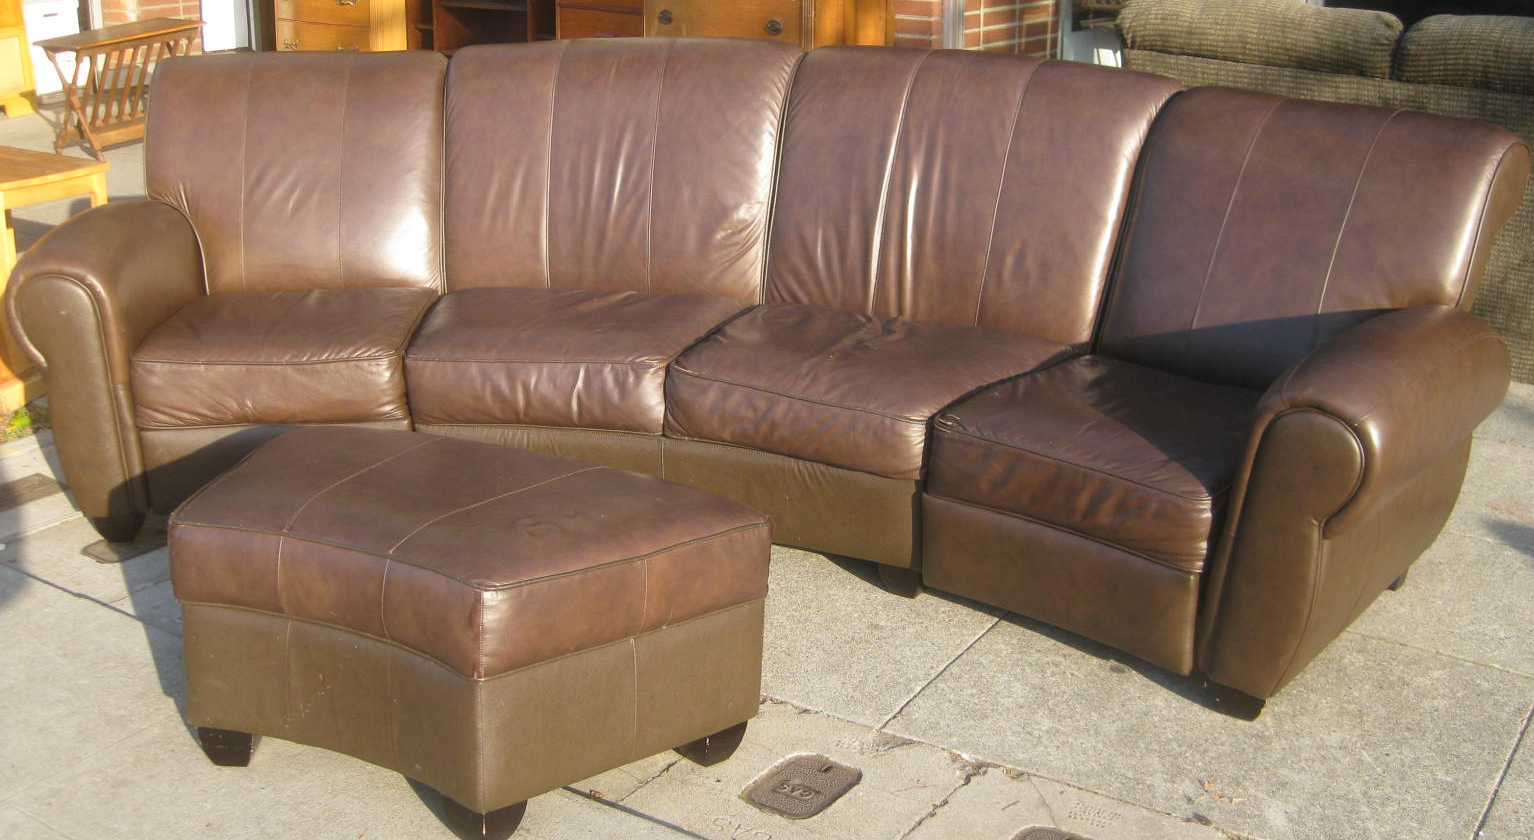 Uhuru Furniture Collectibles Sold Deliciously Curved Leather Sofa Ottoman 350